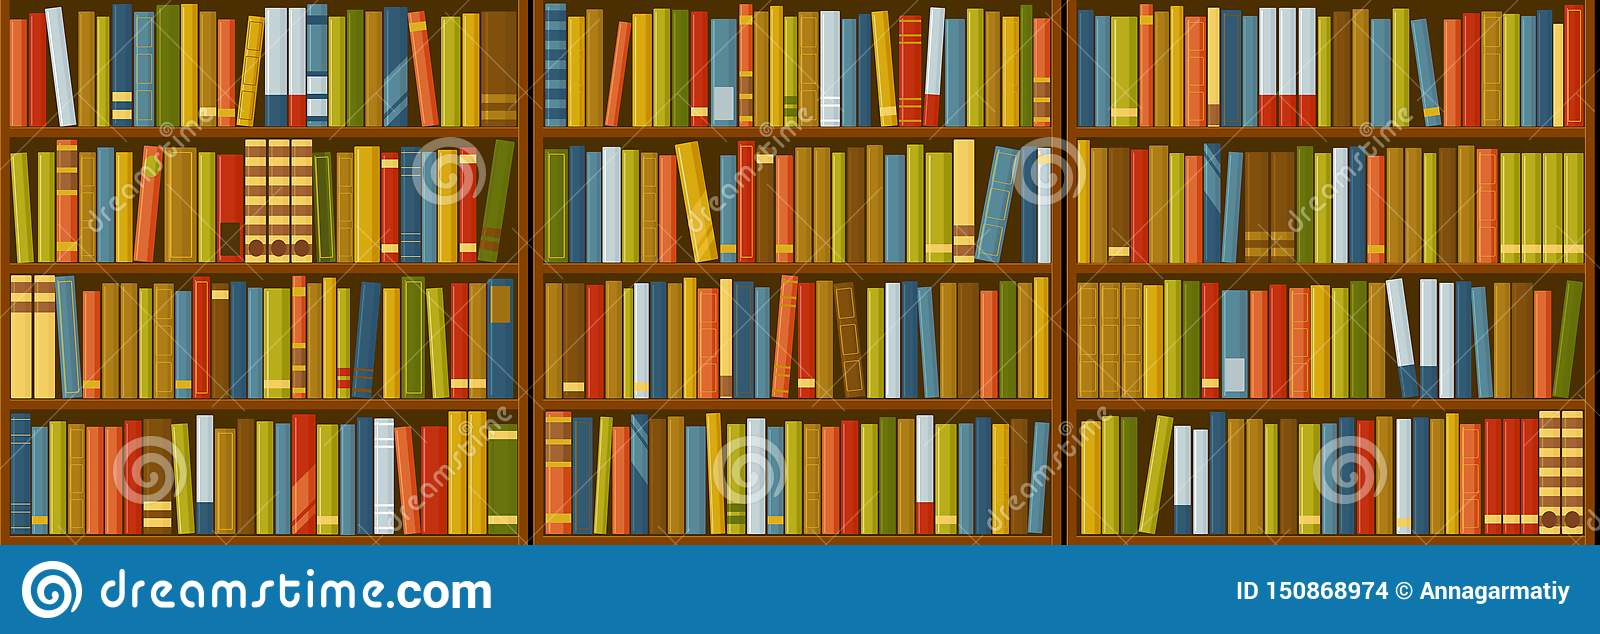 Book Shelf Seamless Texture Stock Vector Illustration Of